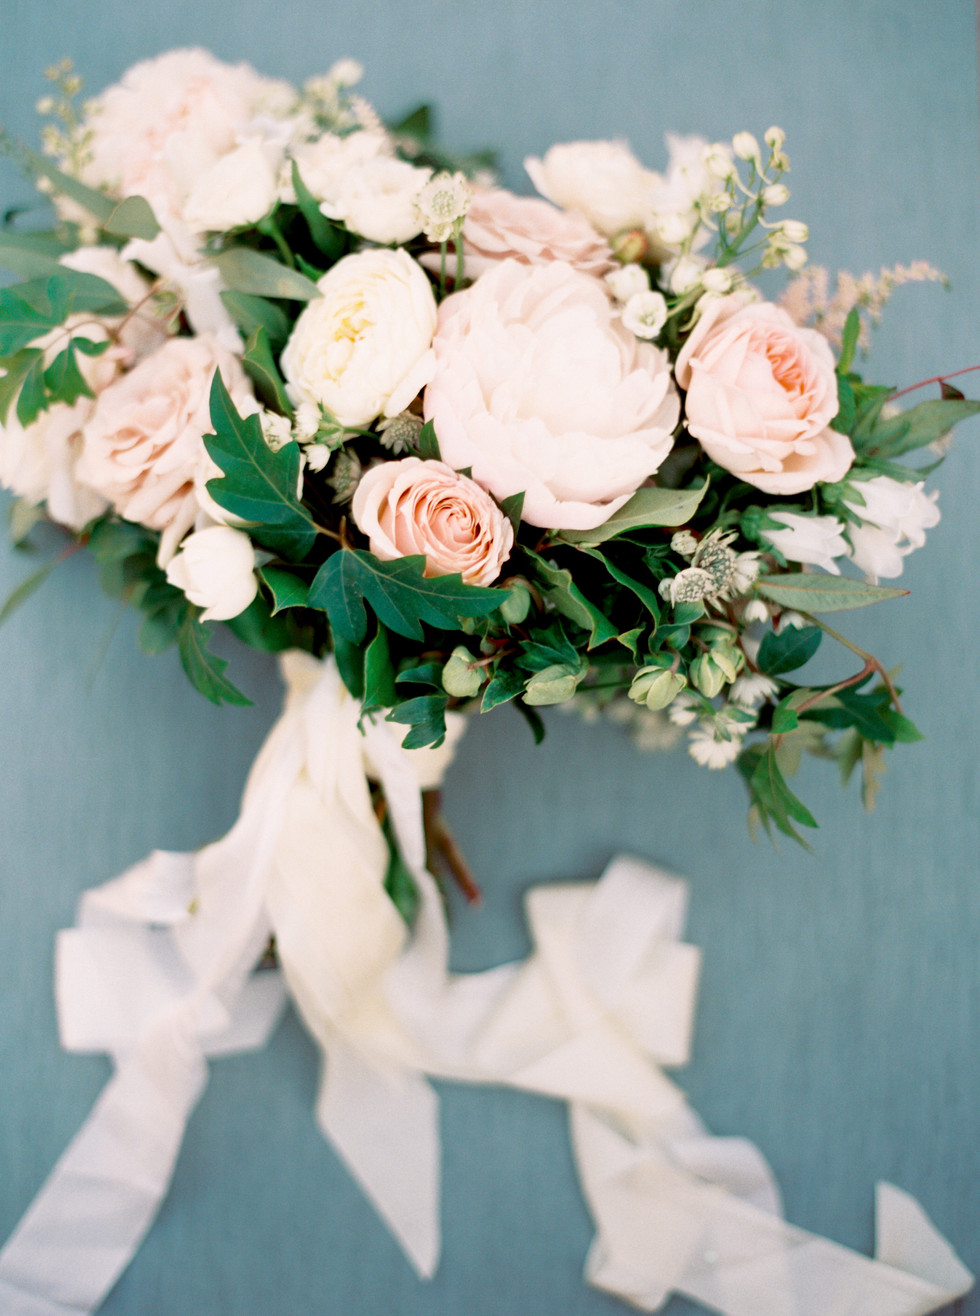 Blush and white garden-style bridal bouquet with silk ribbons. Photo: Mary Claire